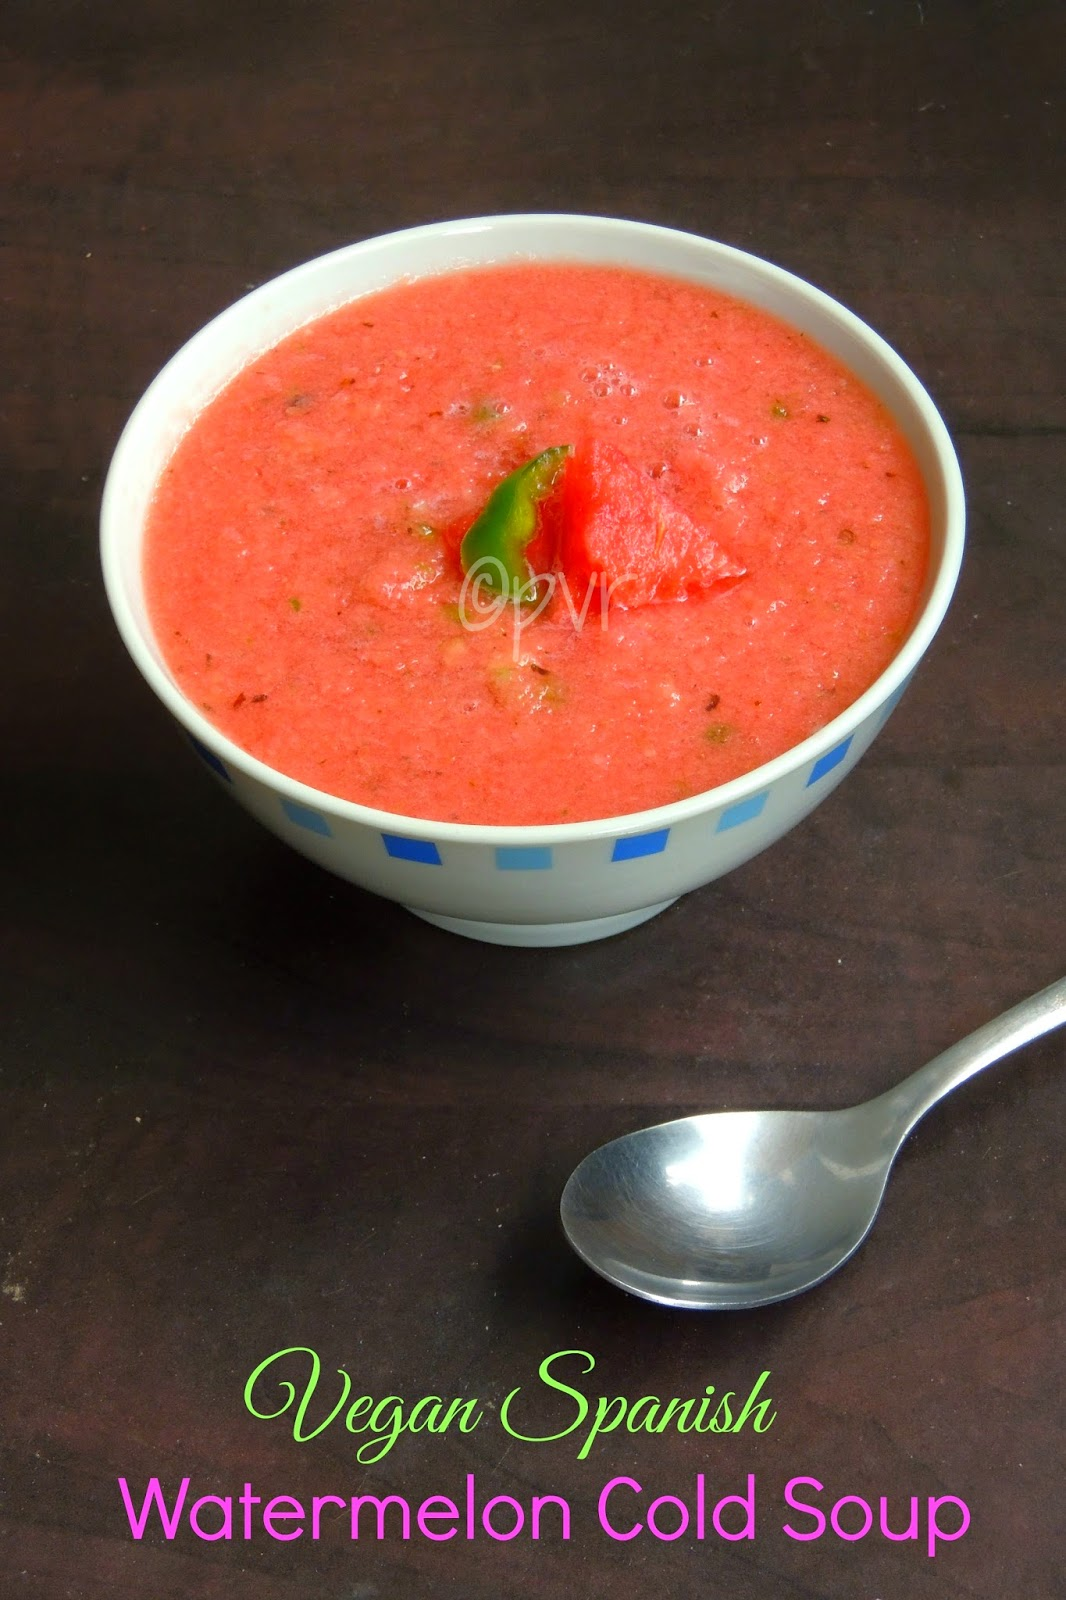 Gazpacho, Vegan Spanish Cold Soup, Watermelon Gazpacho